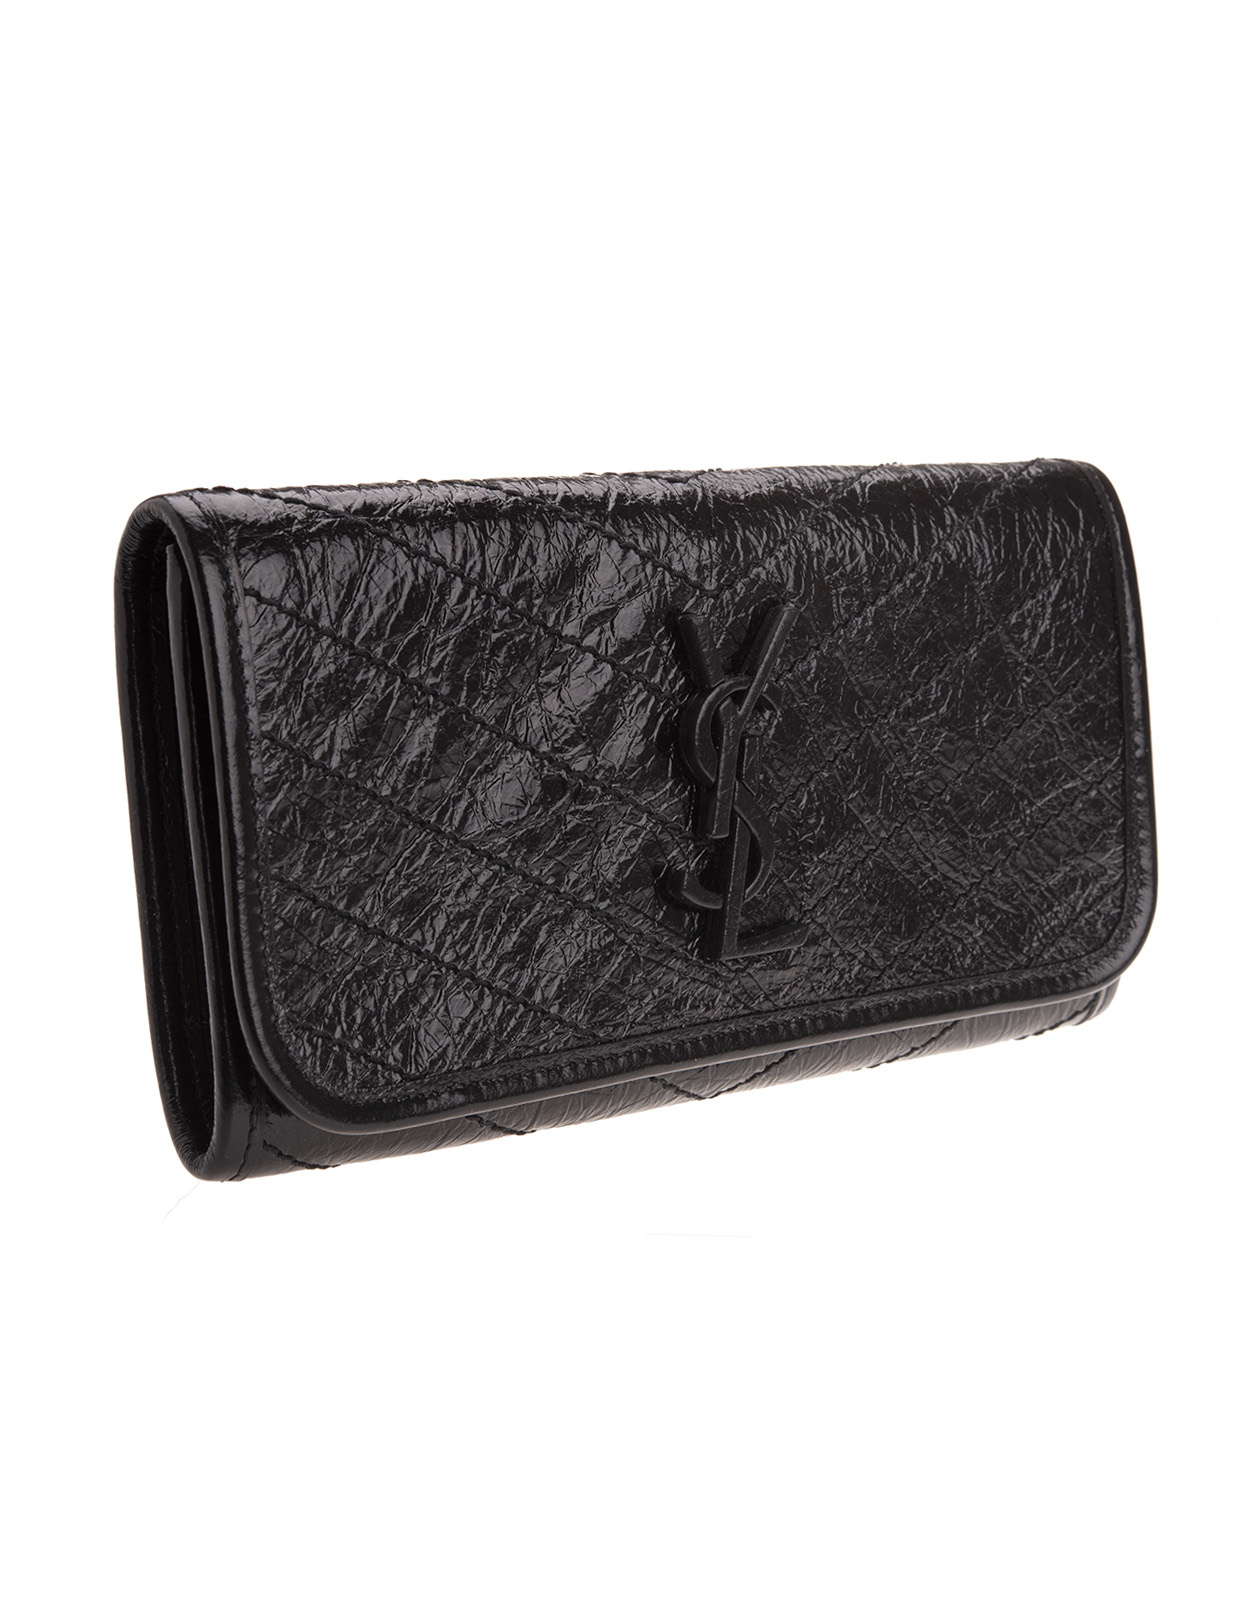 7ad26715bf Niki Large Wallet In Black Vintage Leather